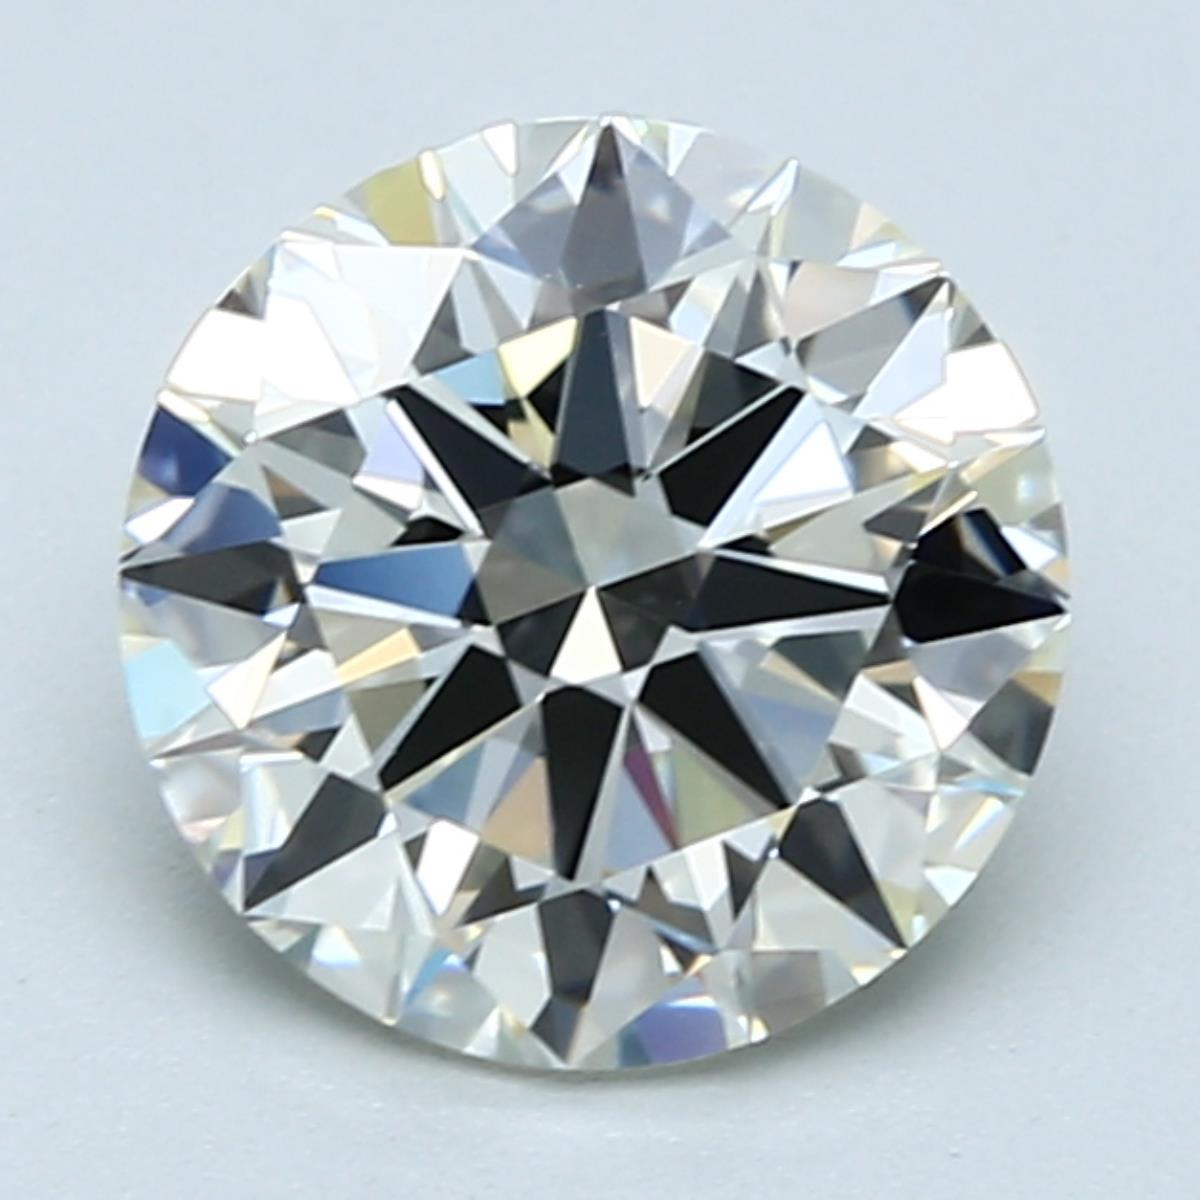 2 Carat K Color Diamond